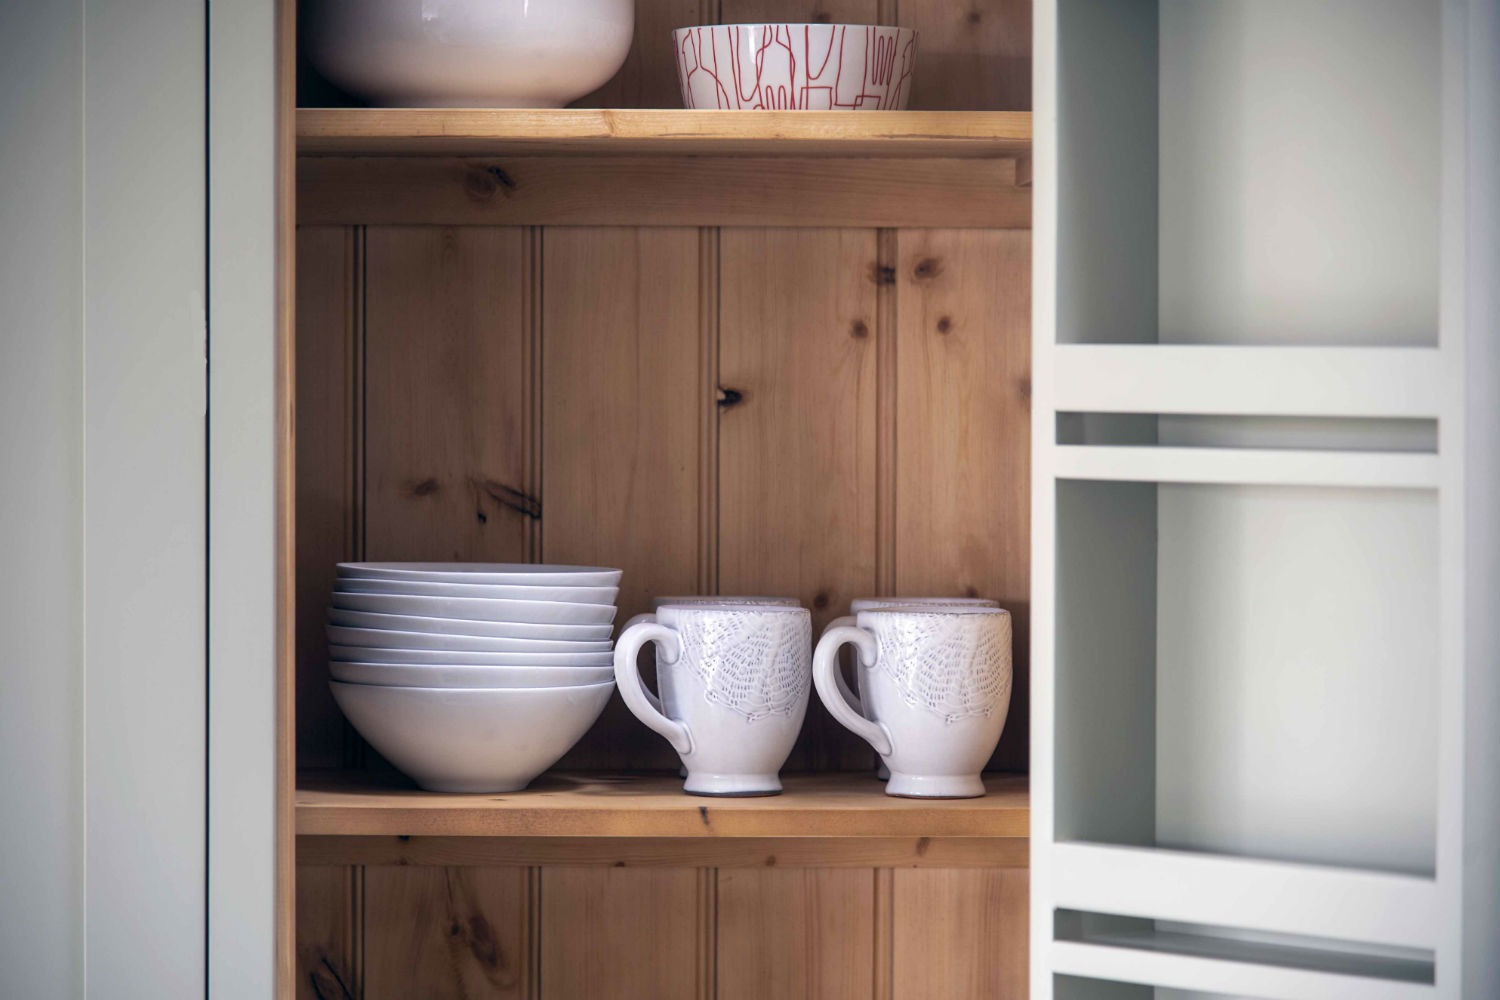 Cupboard with crockery